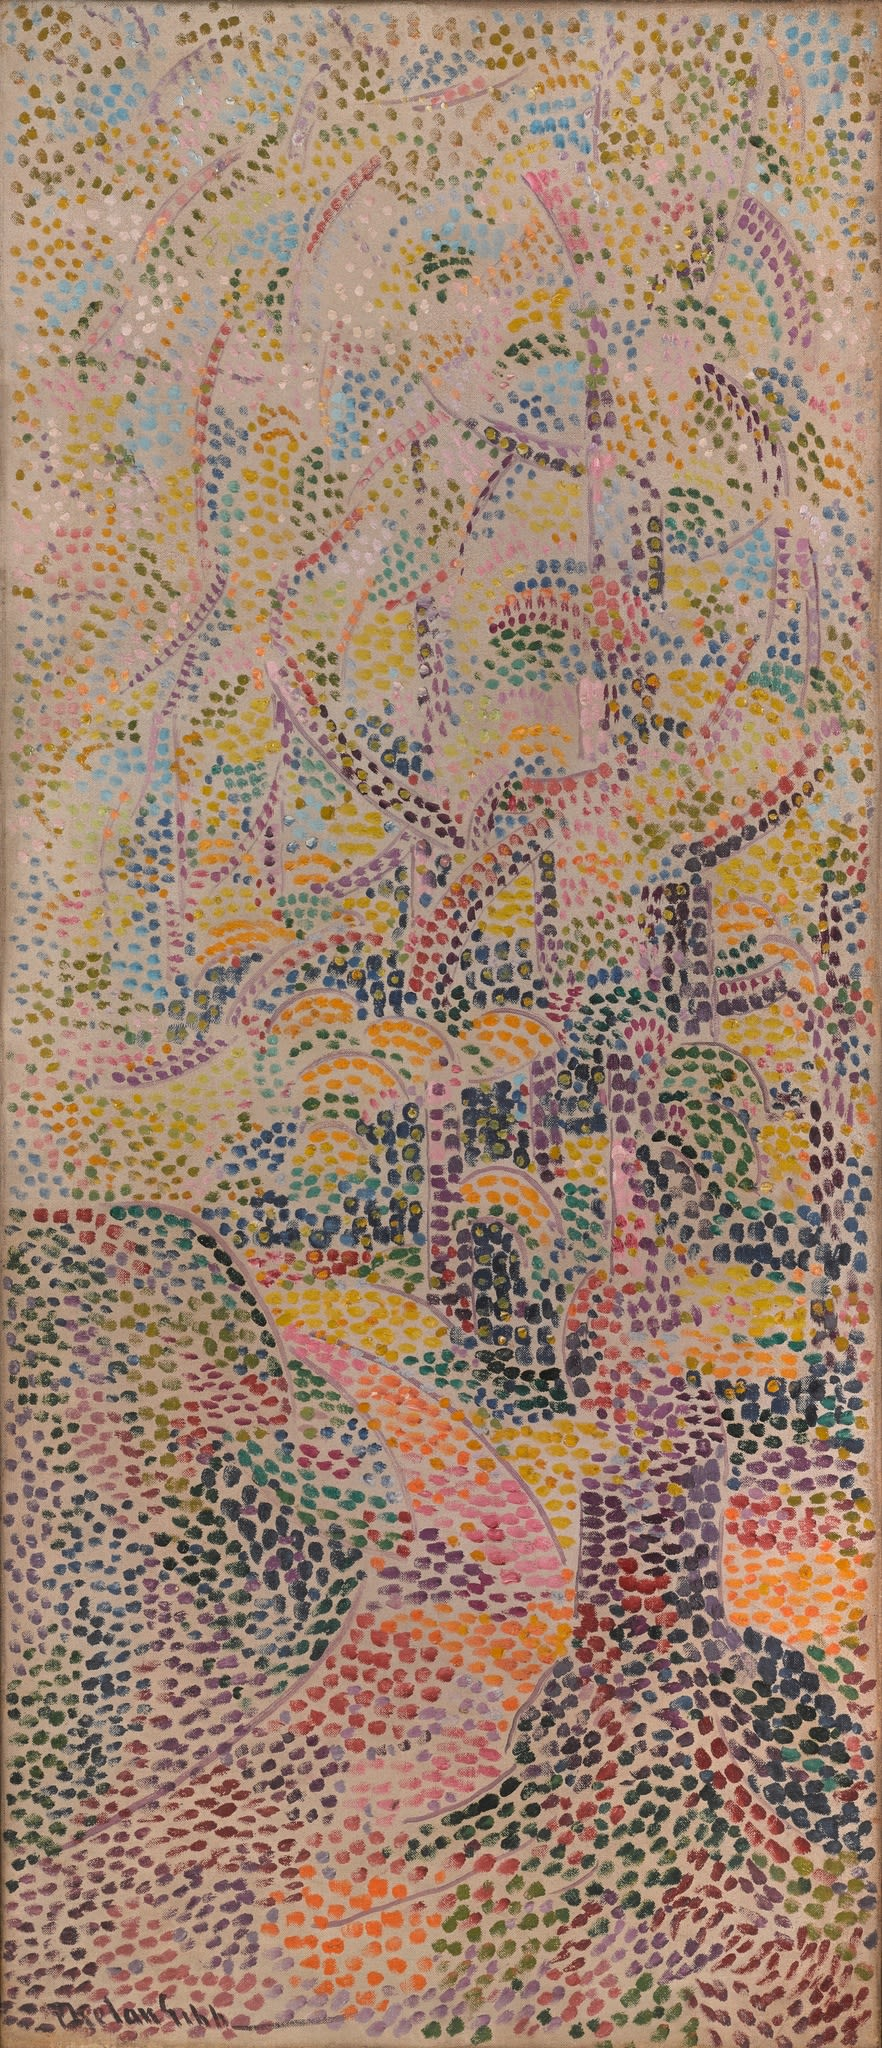 """<span class=""""link fancybox-details-link""""><a href=""""/artists/27-harry-phelan-gibb/works/206-harry-phelan-gibb-untitled-pointillist-composition-c.1908/"""">View Detail Page</a></span><div class=""""artist""""><strong>Harry Phelan Gibb</strong></div> 1870 - 1948 <div class=""""title""""><em>Untitled (pointillist composition)</em>, c.1908</div> <div class=""""signed_and_dated"""">signed lower left</div> <div class=""""medium"""">oil on canvas</div> <div class=""""dimensions"""">41 3/4 x 17 3/4 in<br />106 x 45.2 cm</div>"""